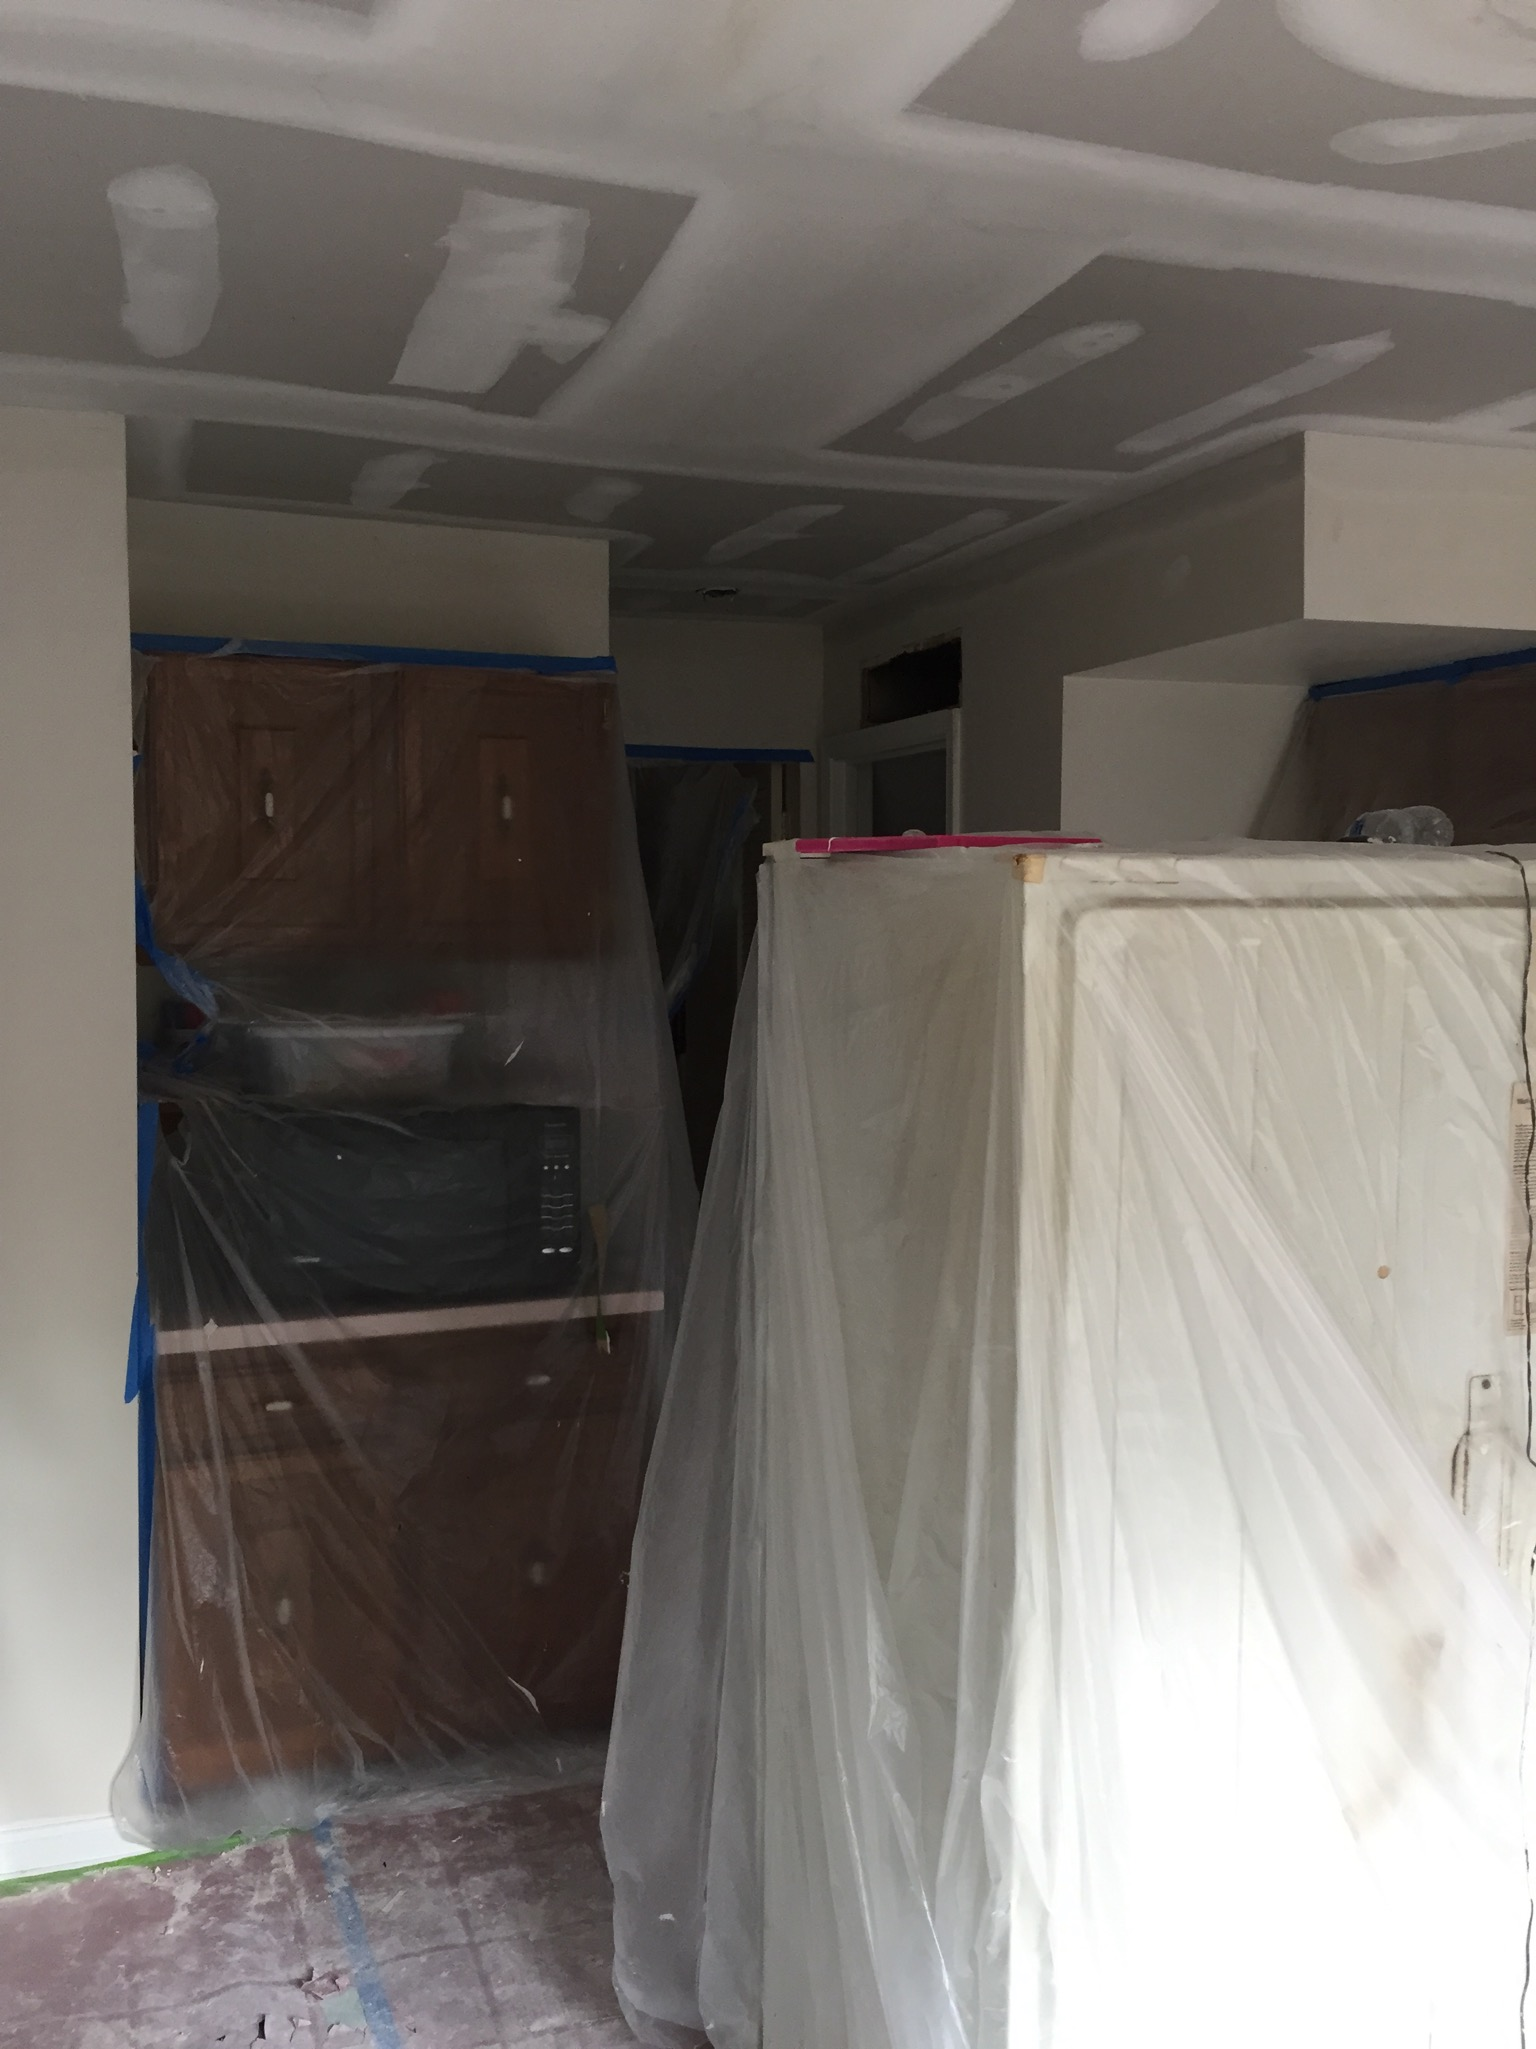 Mold Remediation | Charles Graves Painting - Interior & exterior